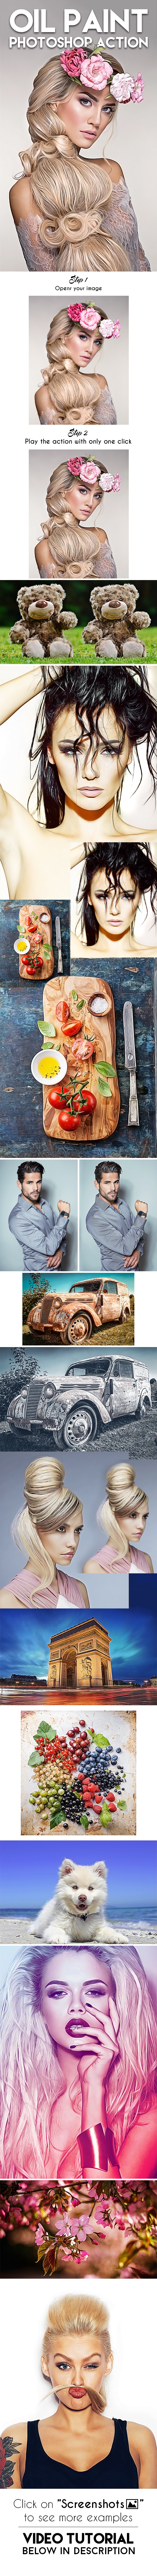 Oil Paint Photoshop Action - Photo Effects Actions